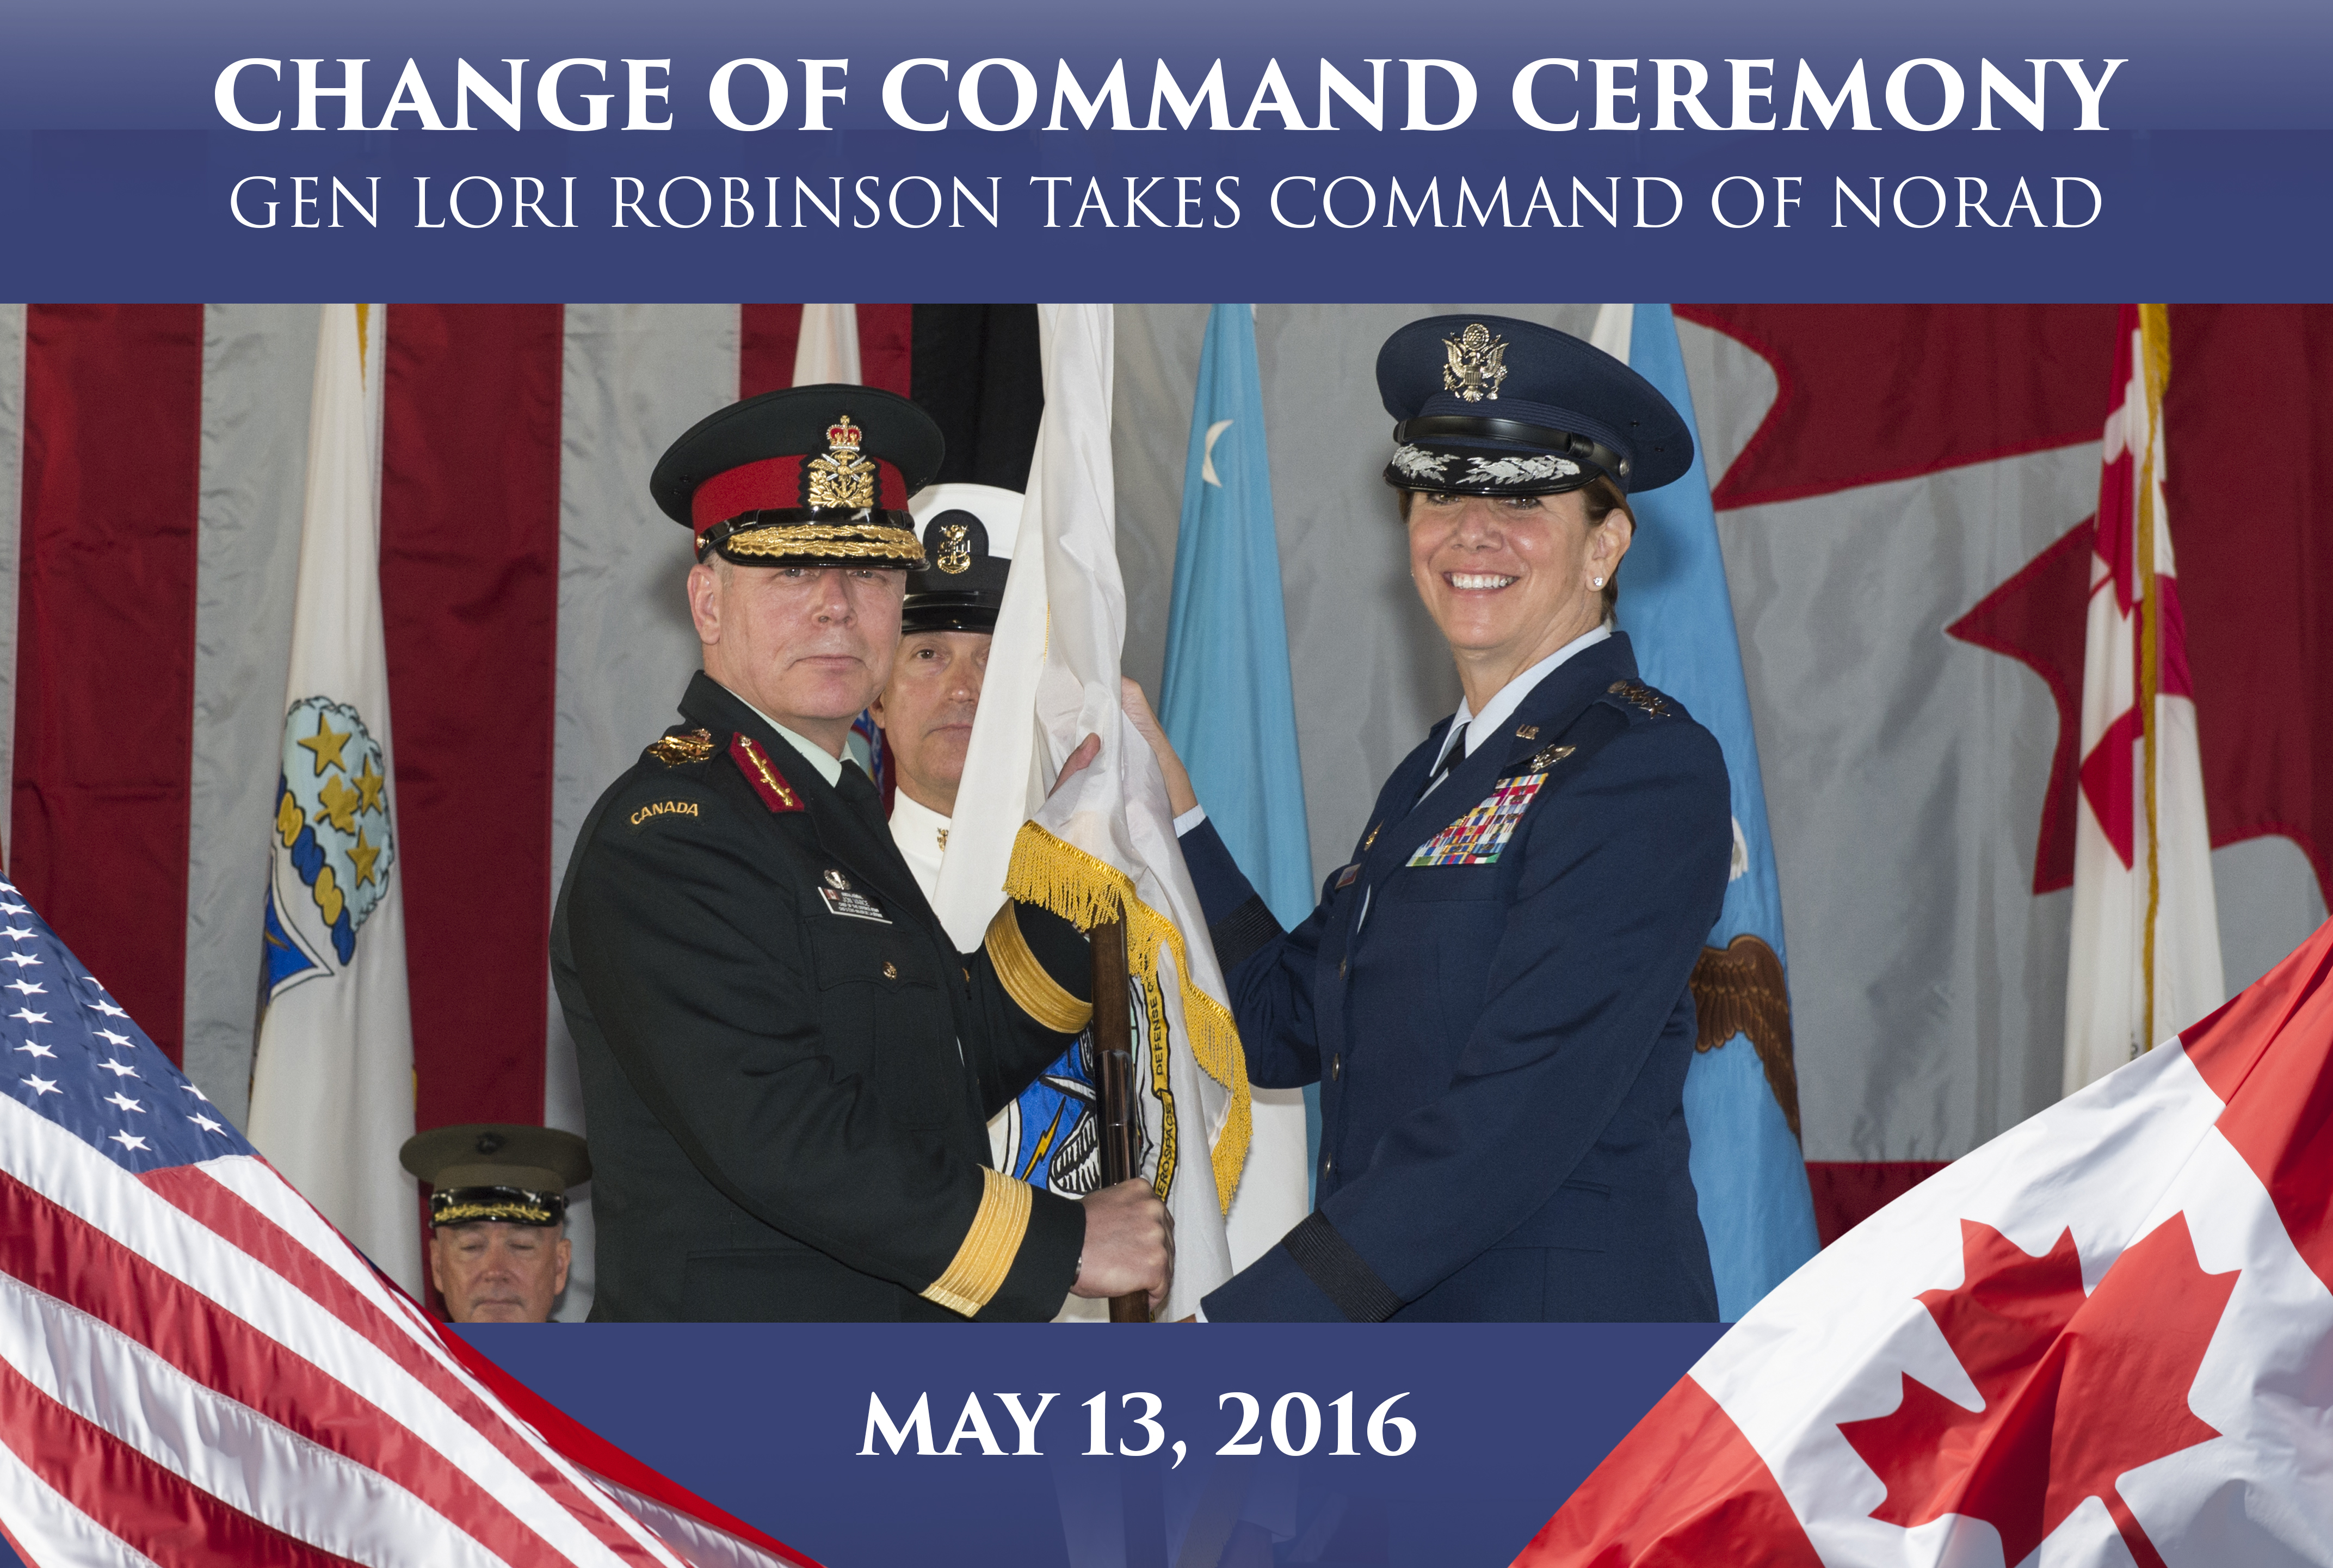 Gen Lori J. Robinson takes command of NORAD and USNORTHCOM